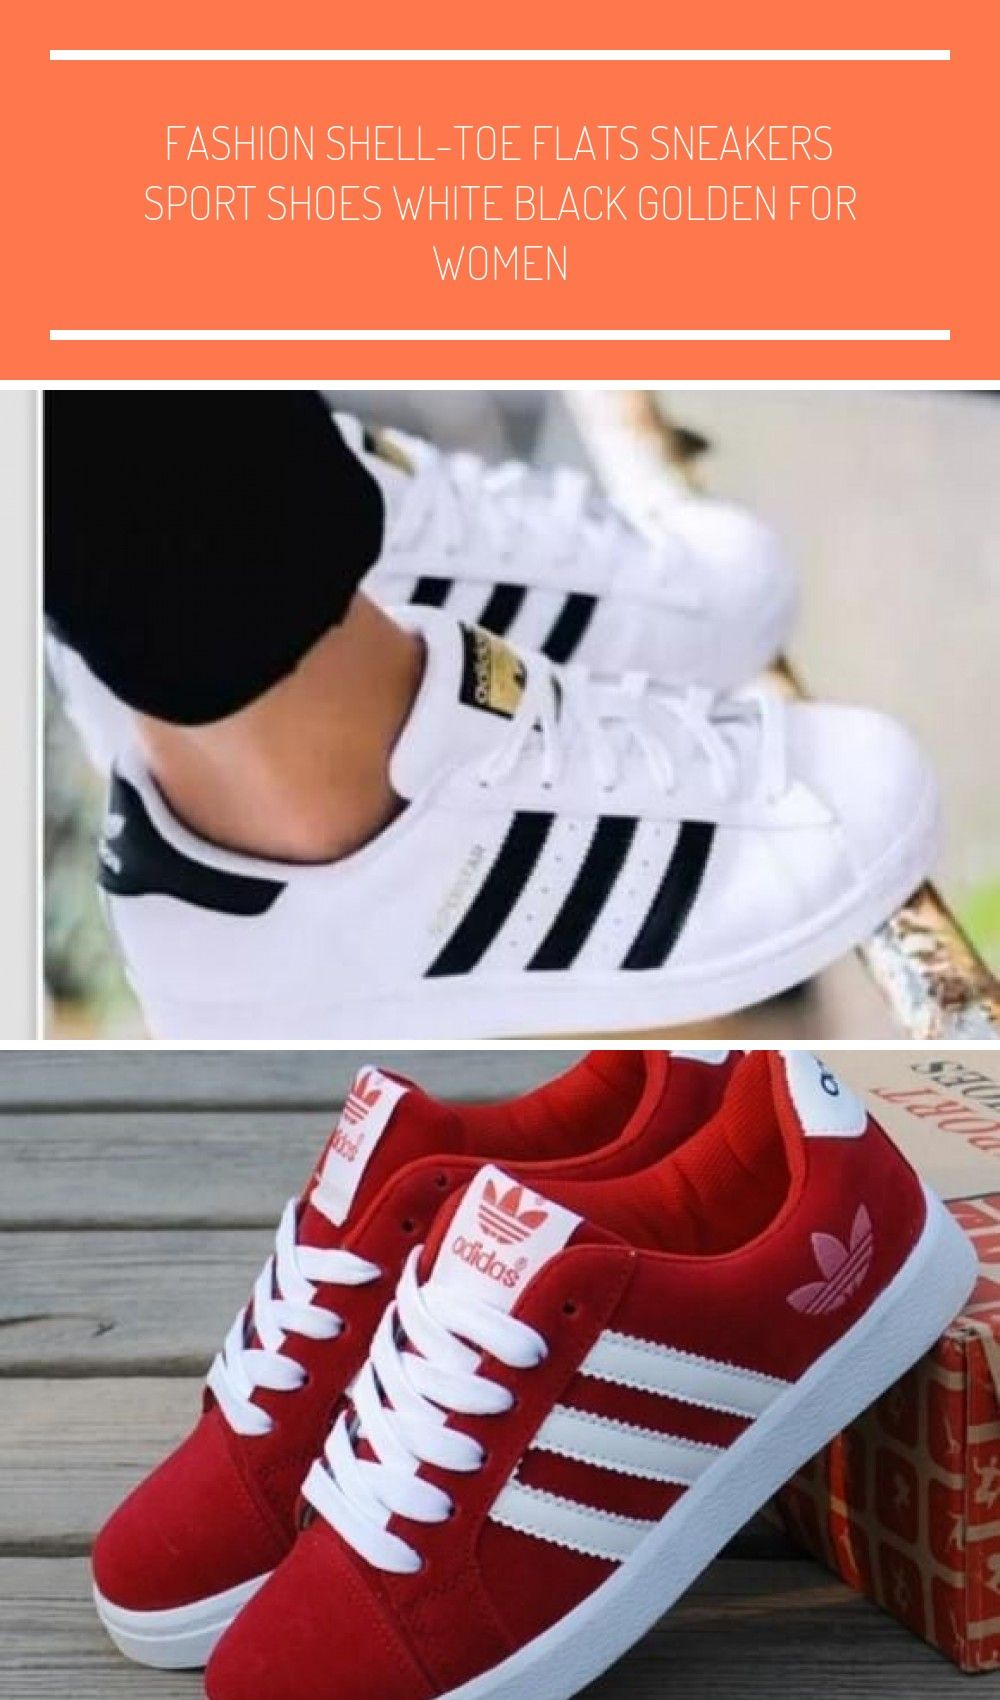 Adidas in 2020 | Adidas shoes women, Adidas sneakers, Adidas